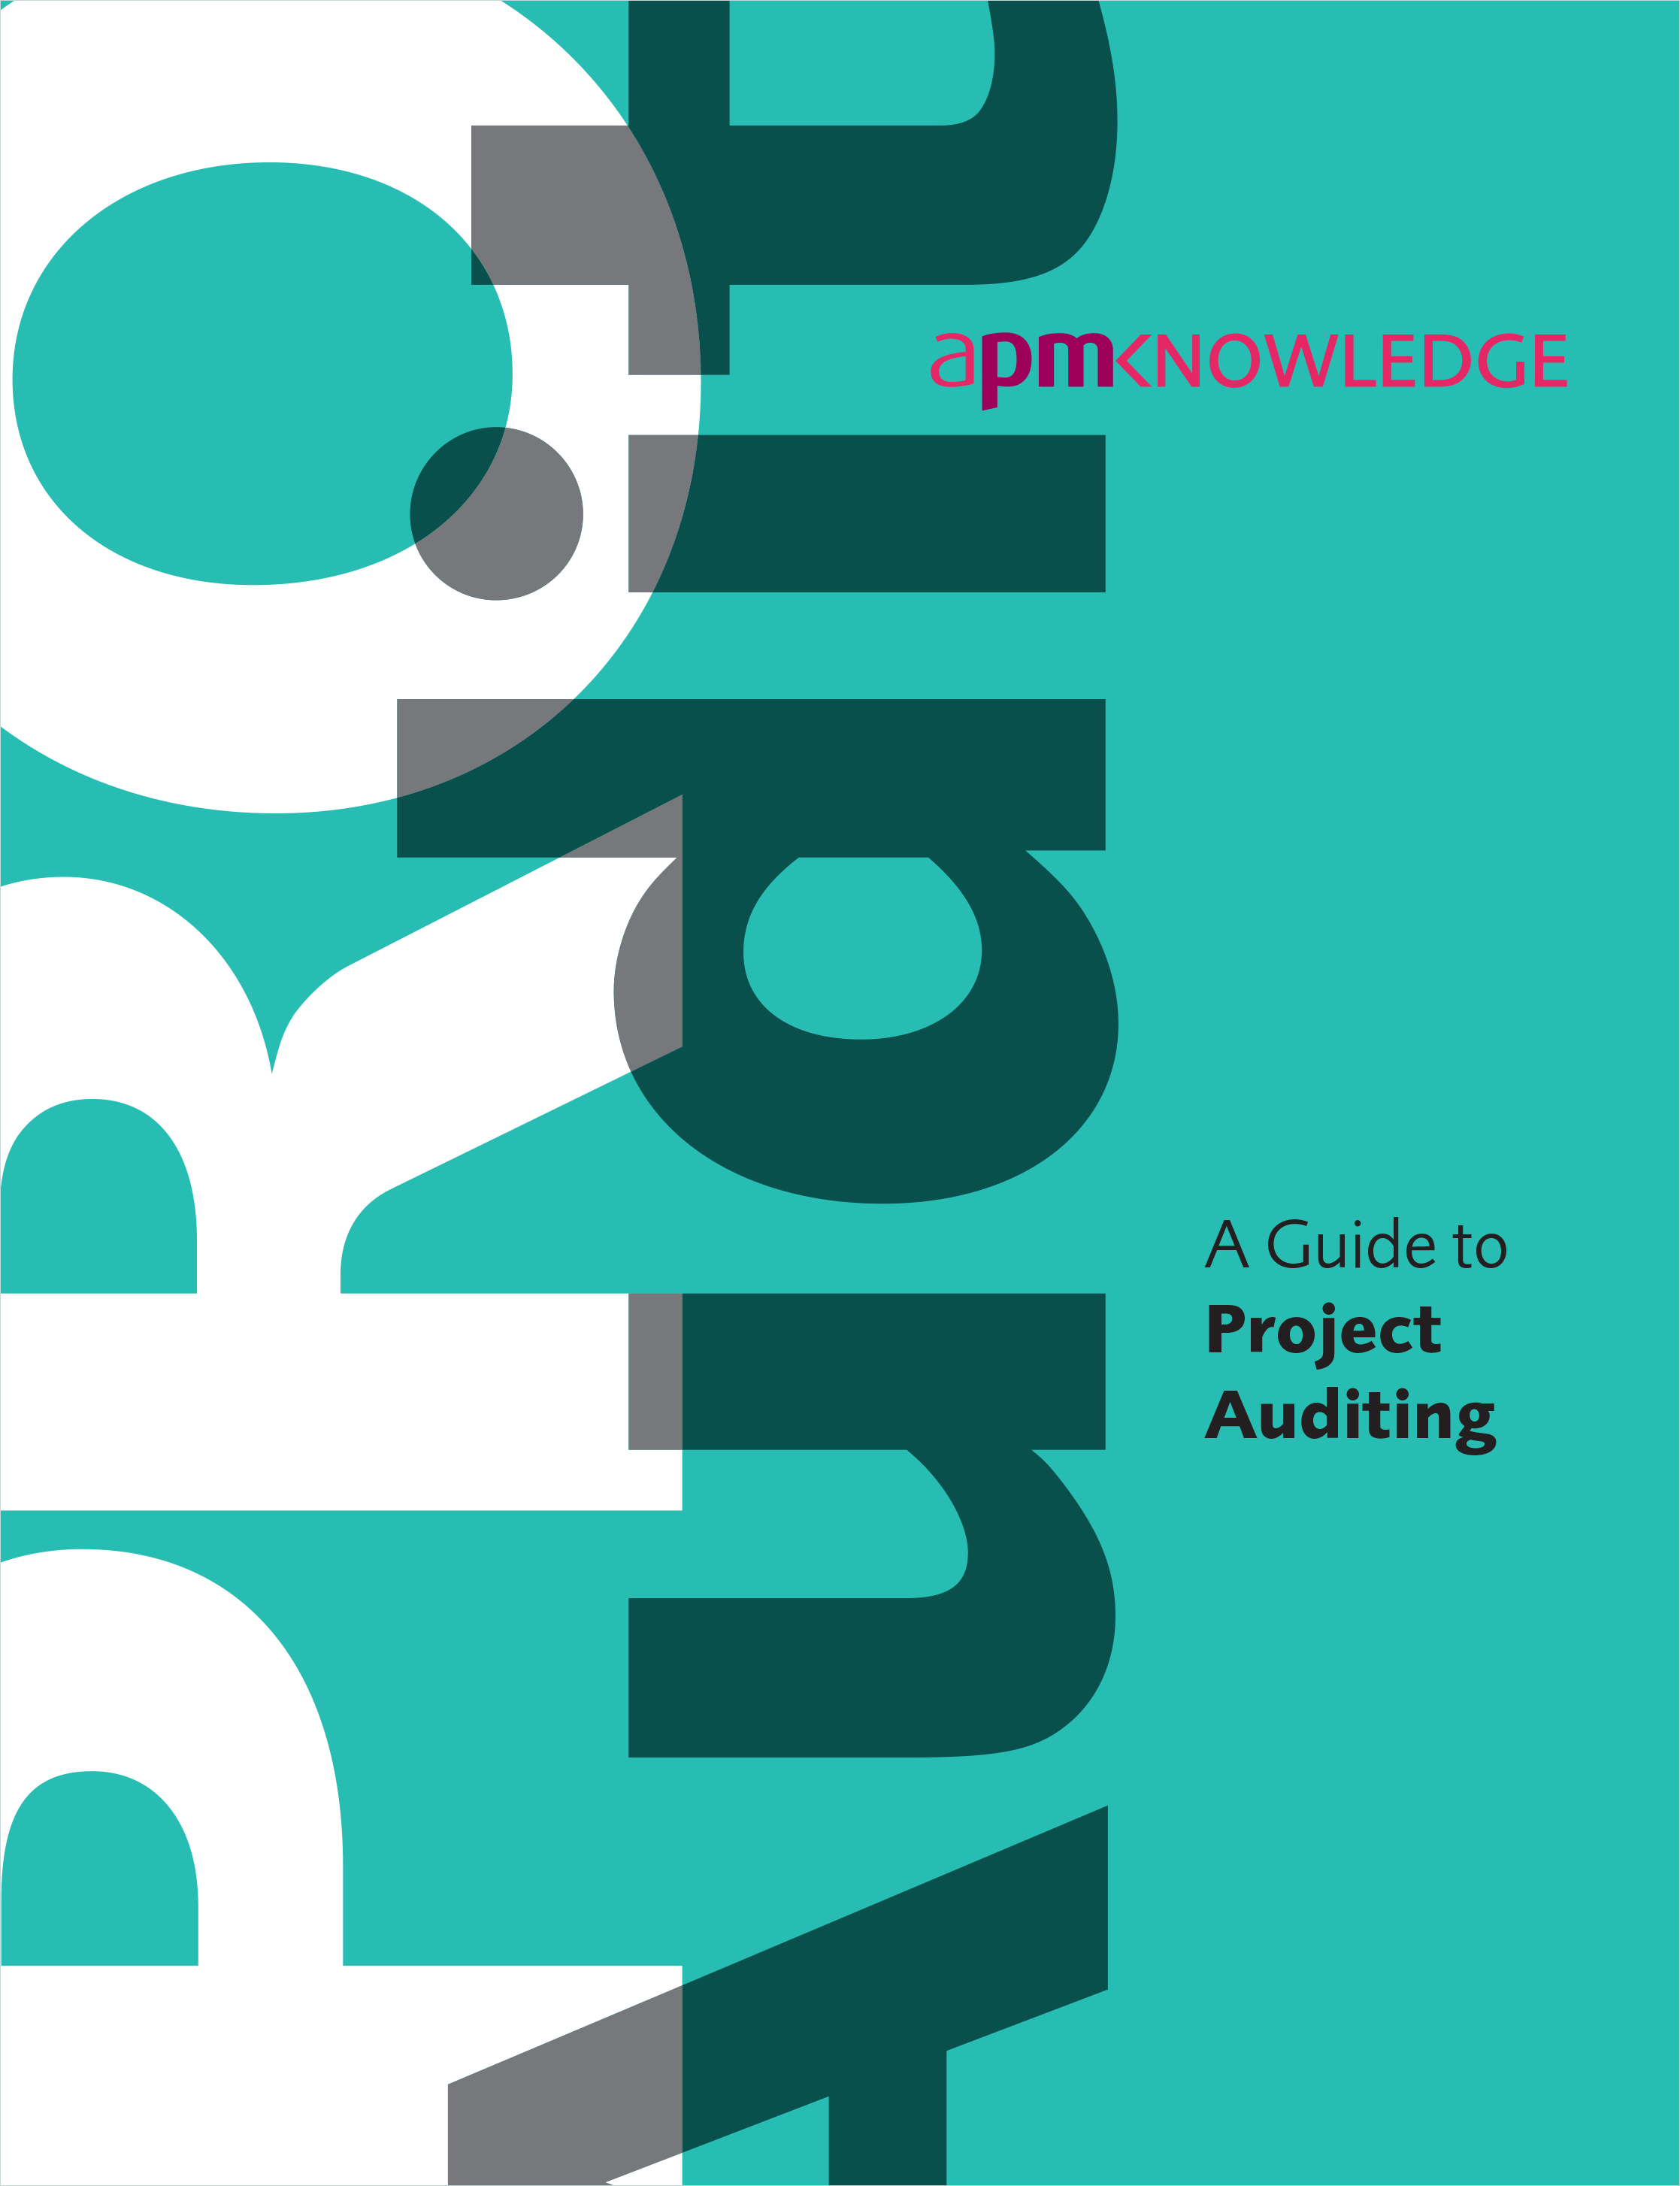 A Guide to Project Auditing